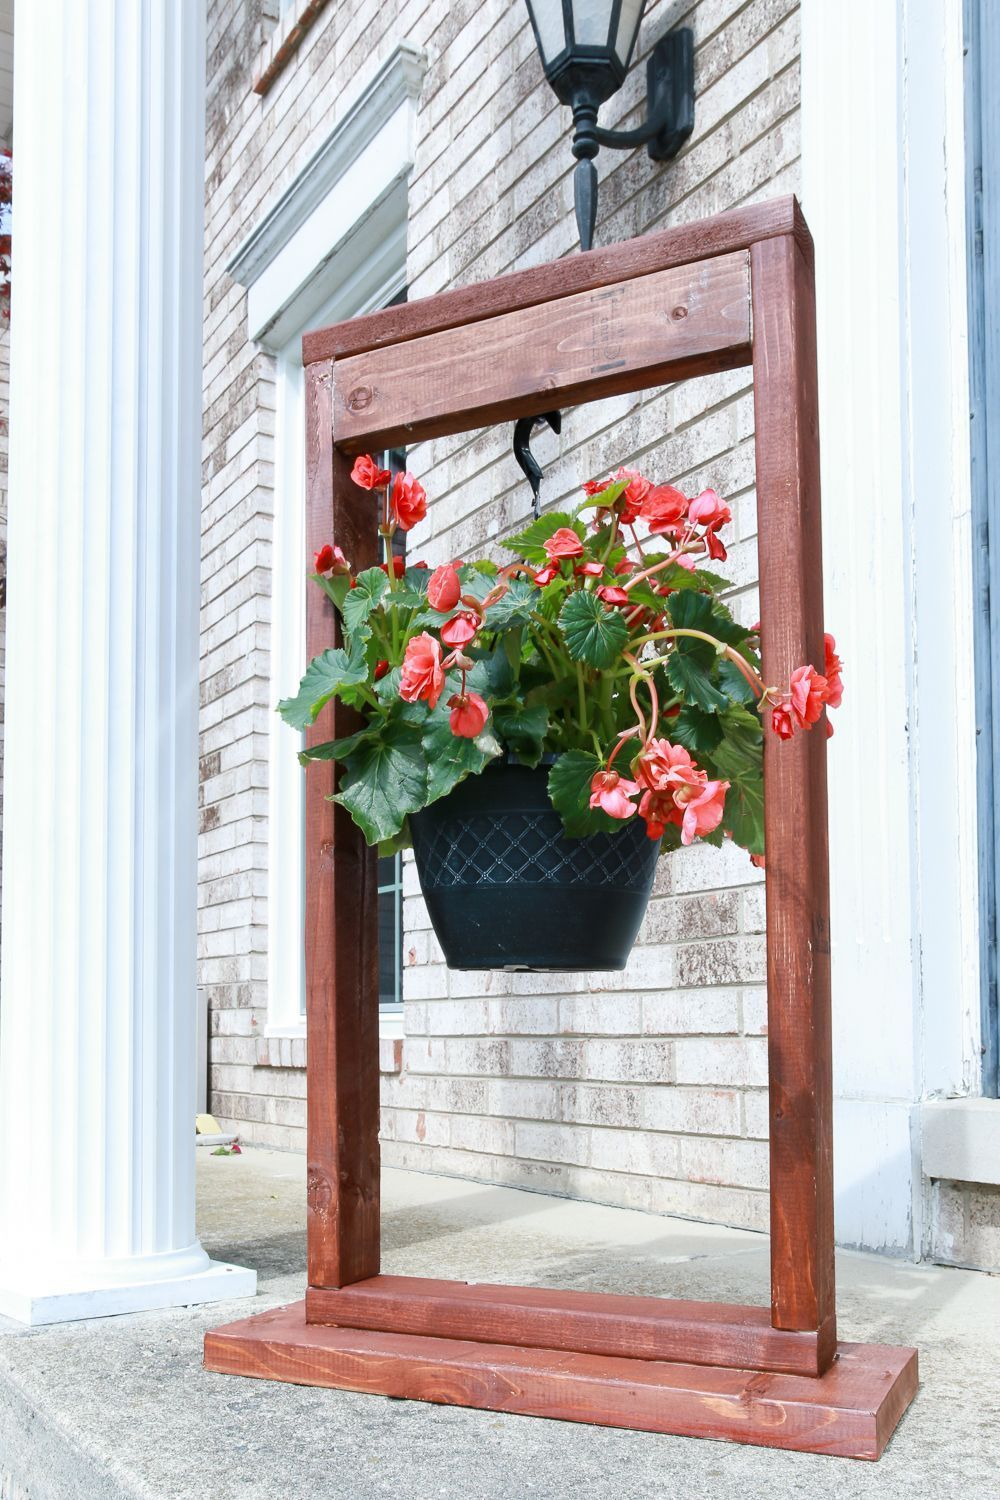 diy plant stand ideas for an outdoor and indoor decoration on easy diy woodworking projects to decor your home kinds of wooden planters id=53578